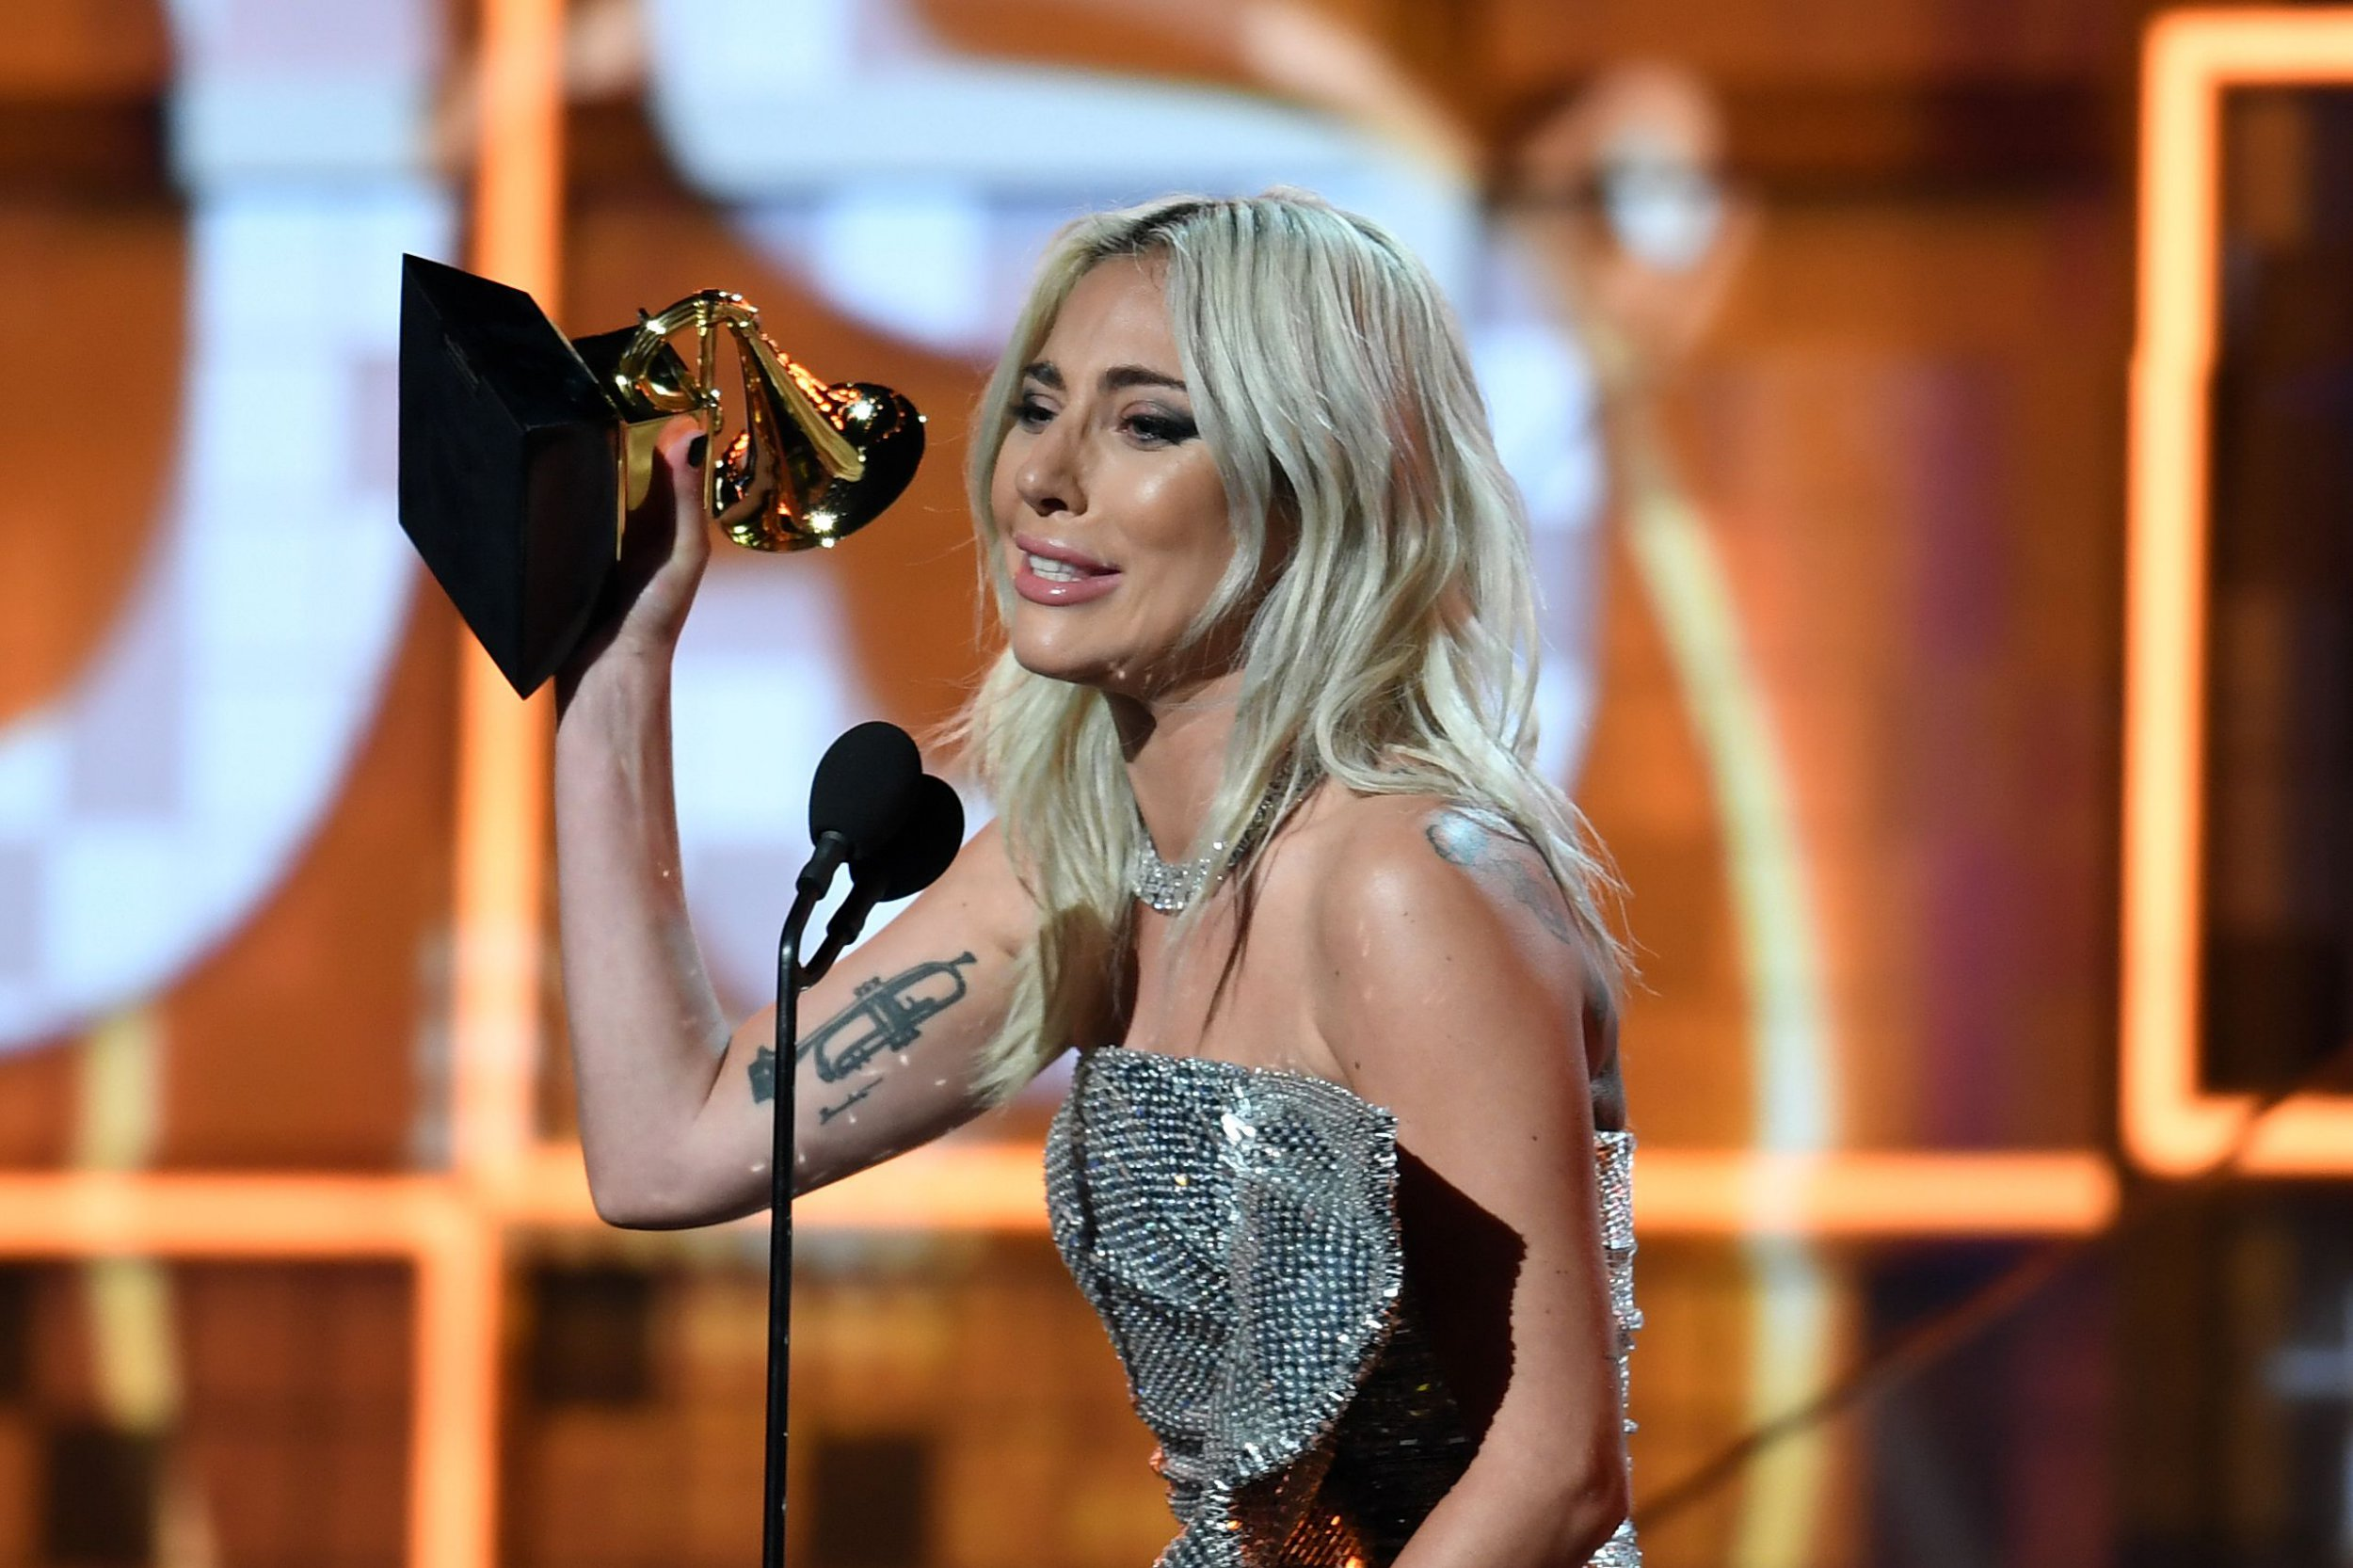 Tearful Lady Gaga wins for Shallow and picks up Grammy for Bradley Cooper as he attends Baftas